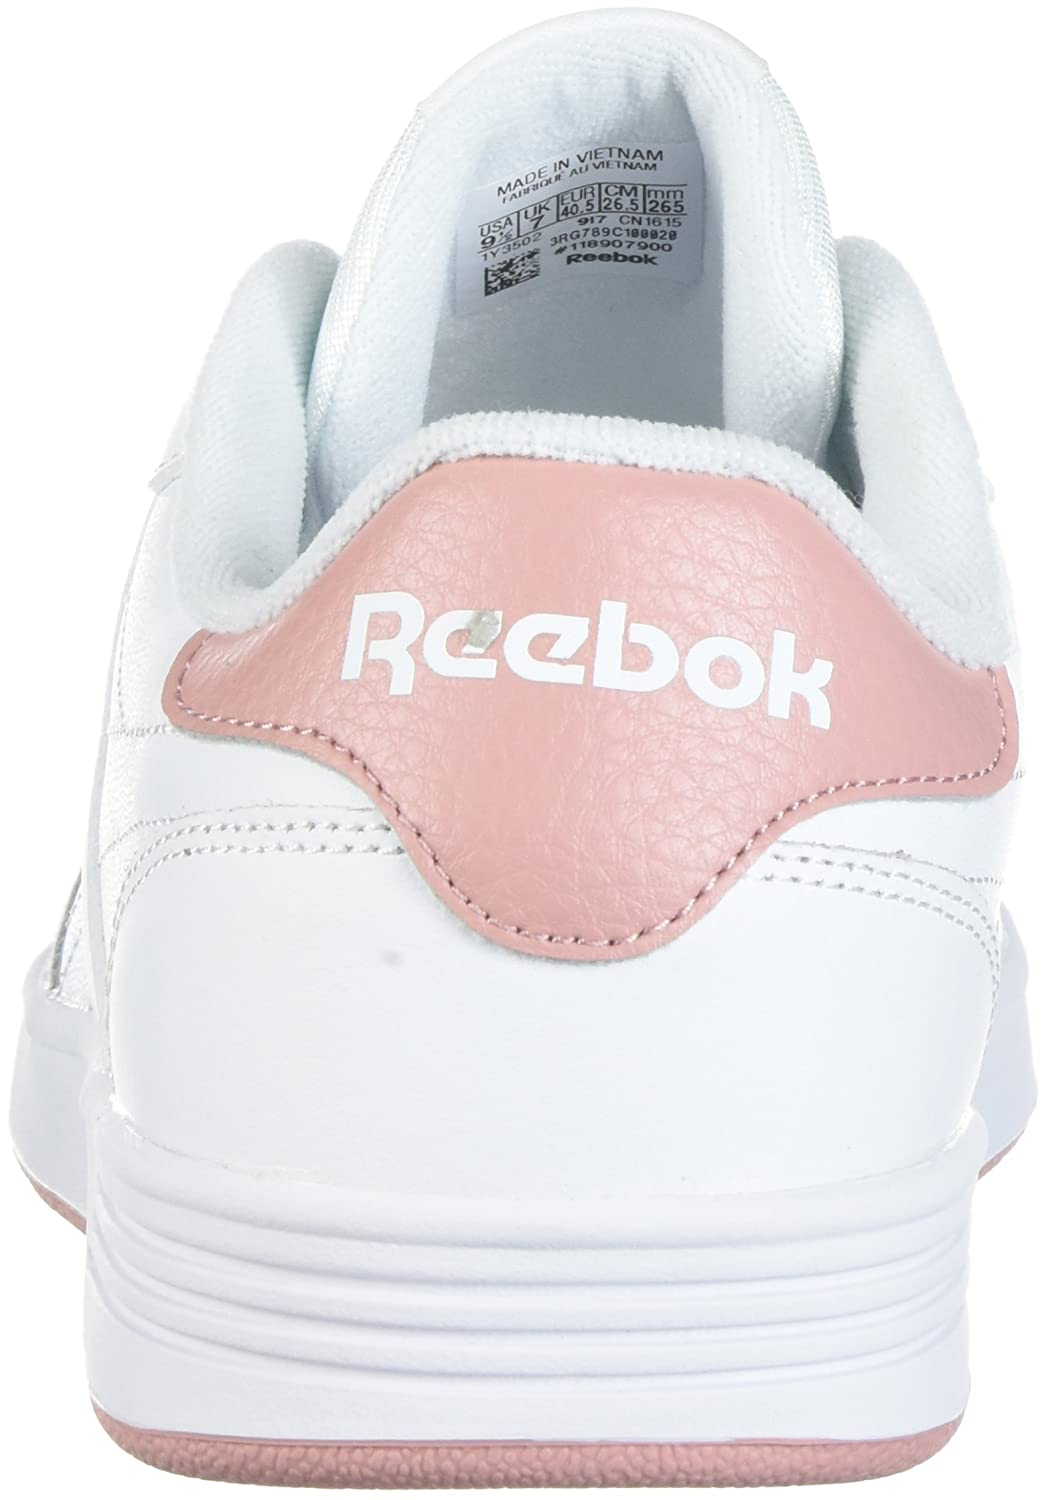 Reebok Women's Club MEMT Track Shoe B072FRY5P6 8.5 B(M) US|White/Chalk Pink